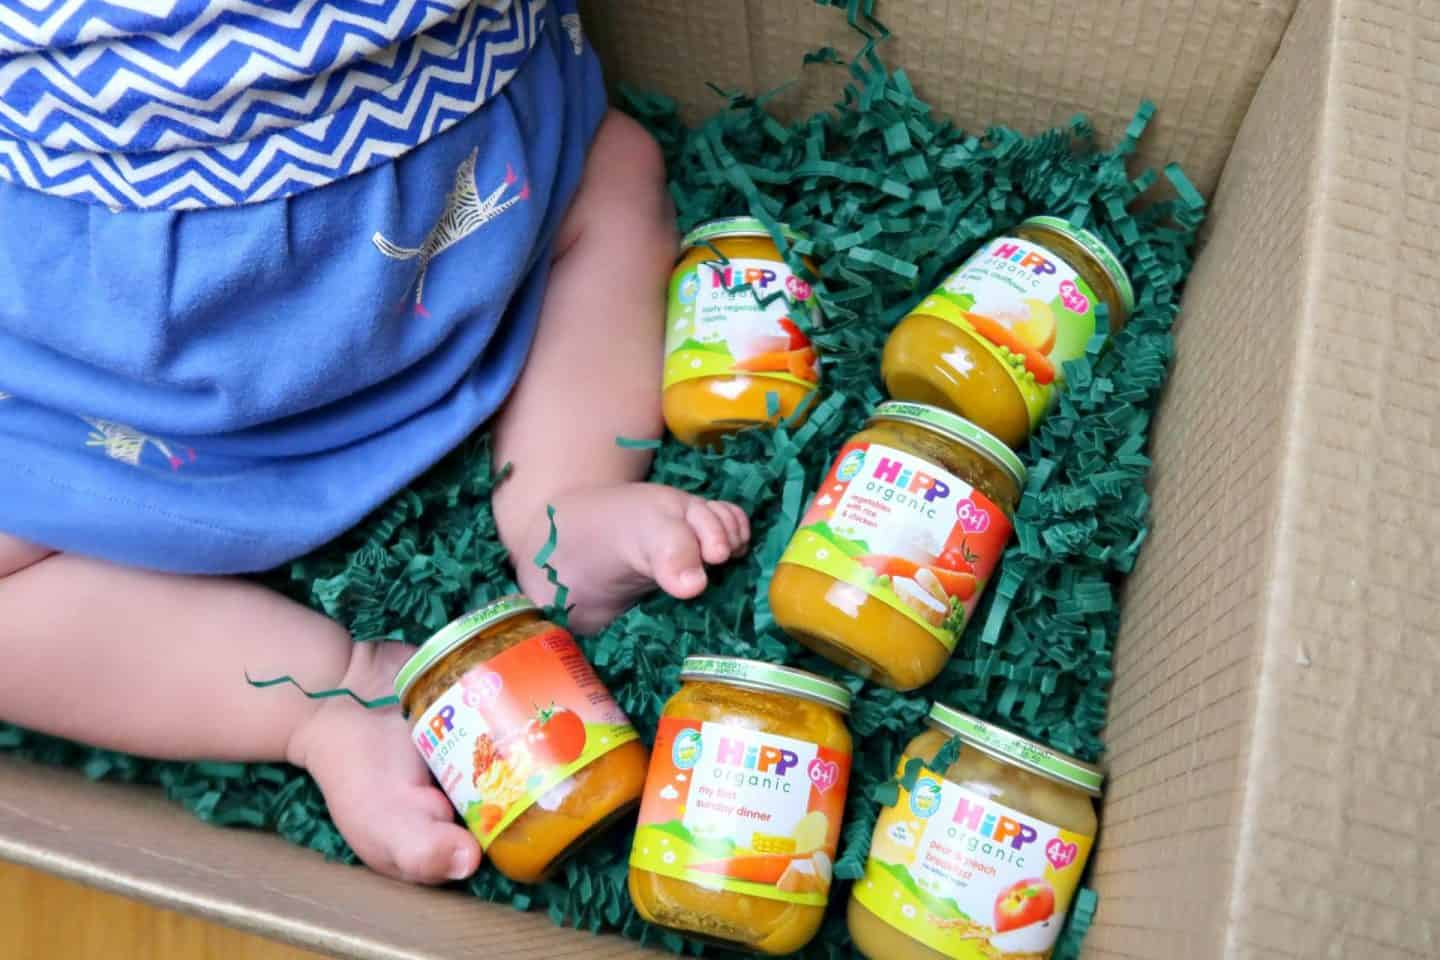 HiPP babyfood jars in box by babies feet